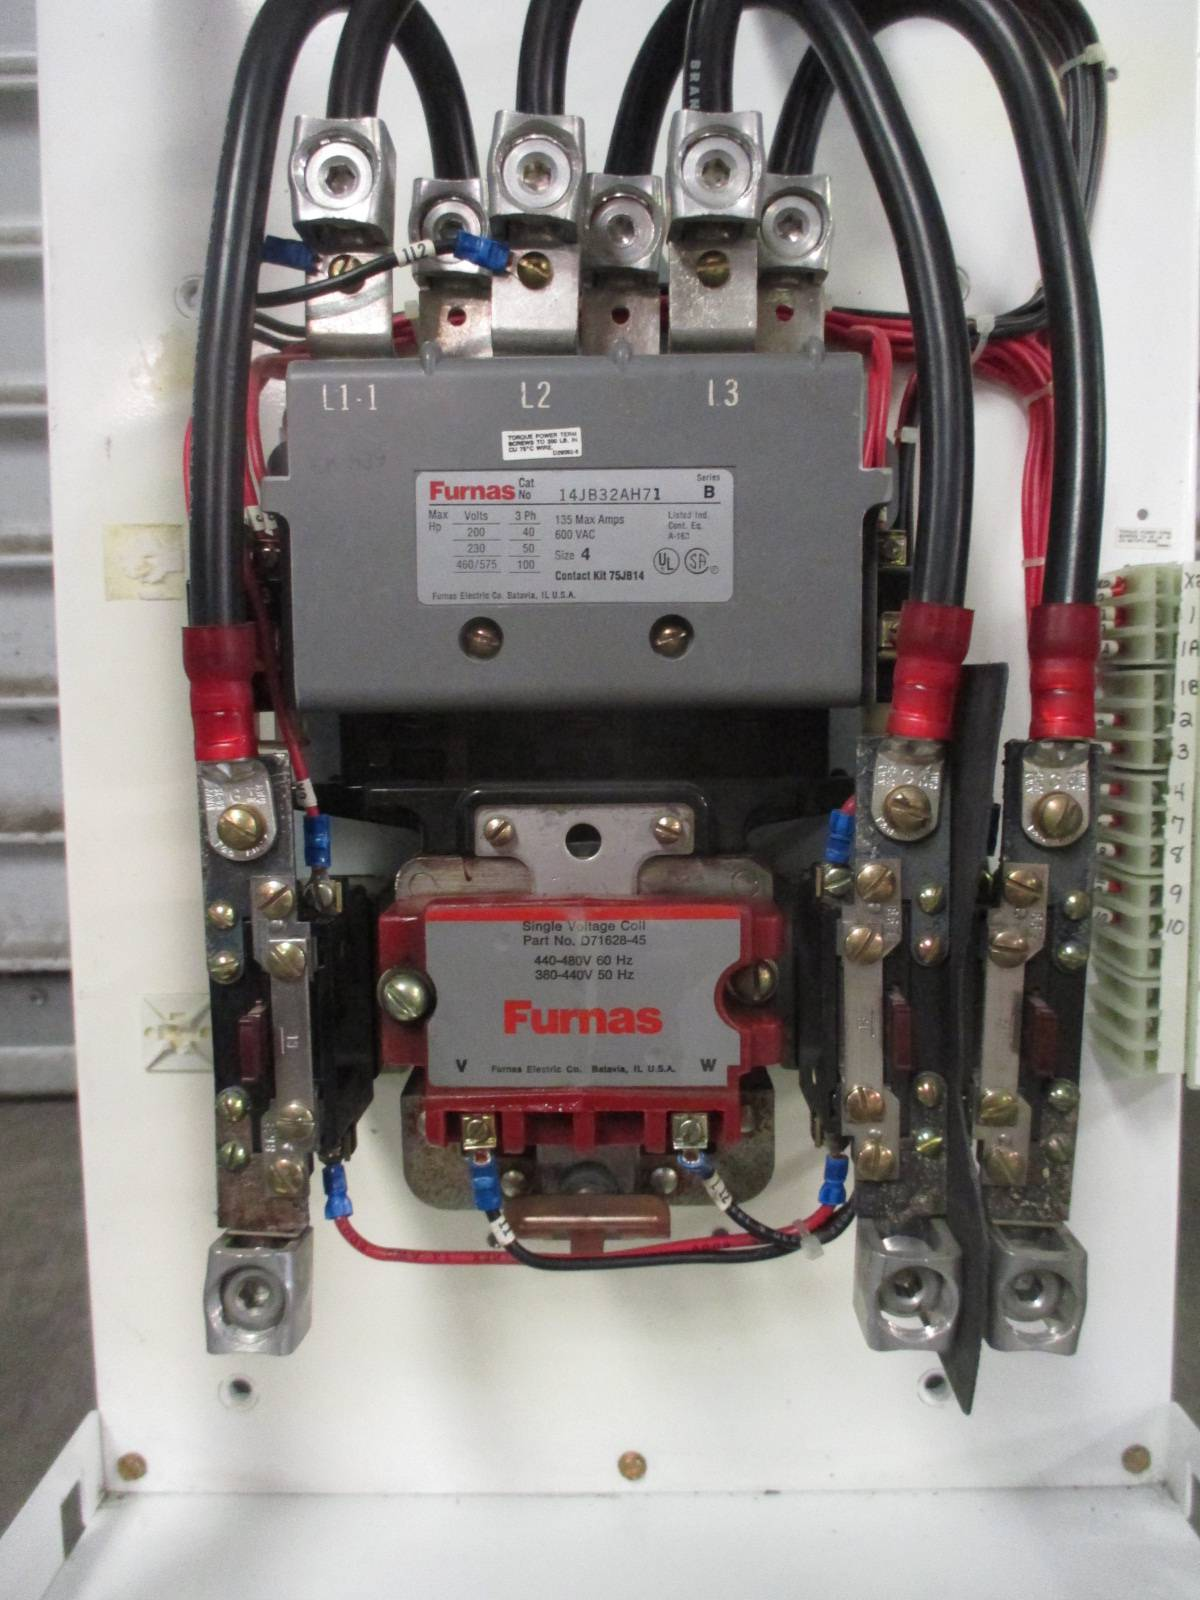 Hid Ballast Wiring Diagram For 480 Volt - Ask & Answer Wiring Diagram on metal halide battery, metal halide valves, metal halide lights, metal halide parts, metal halide led conversion, metal halide bulb diagrams, metal halide electrical wiring, metal halide starter, metal halide dimensions,